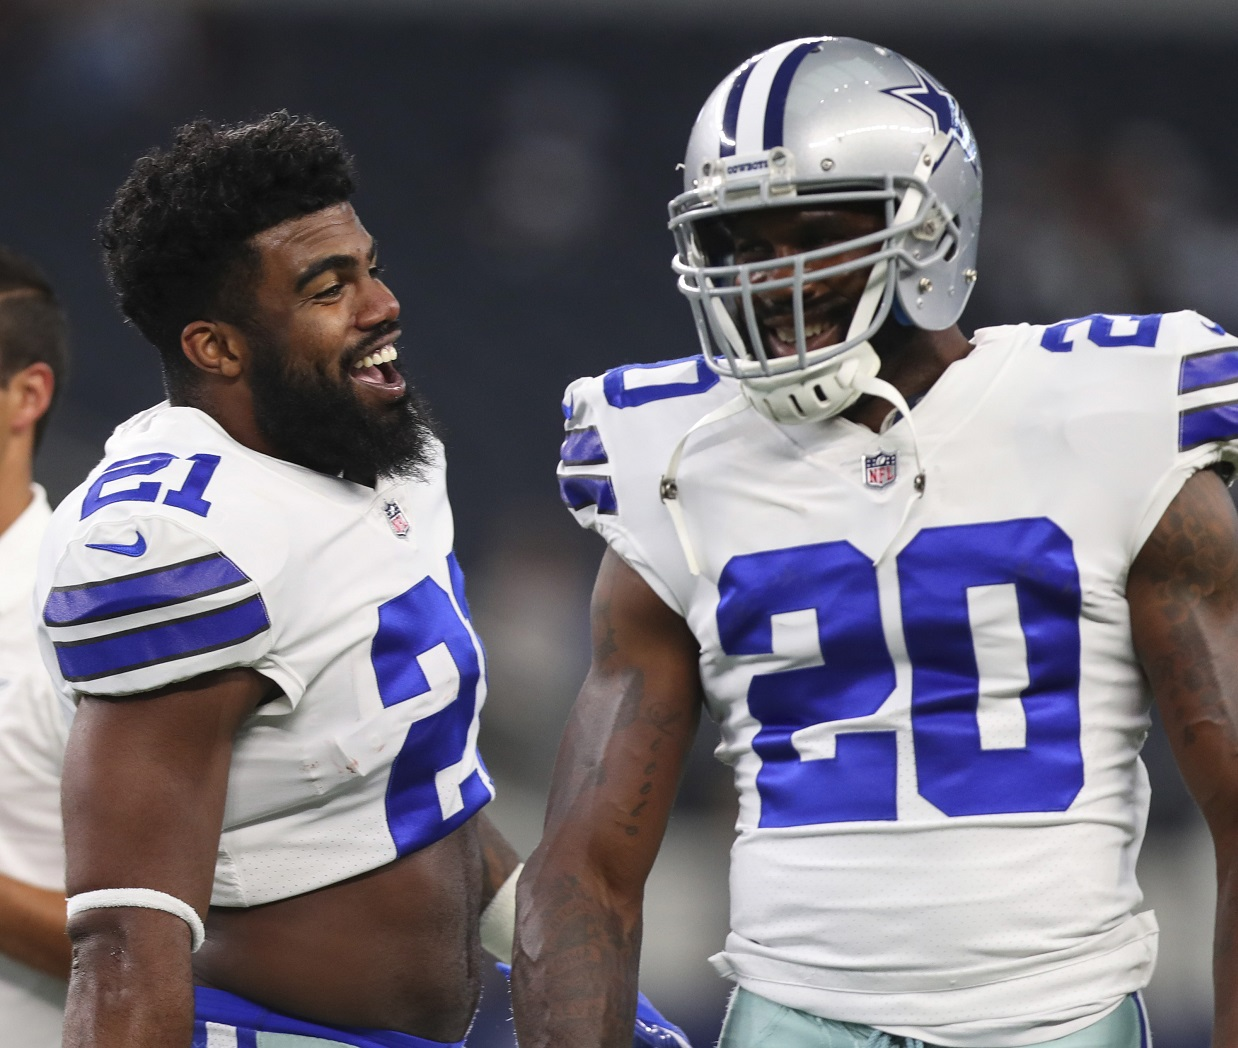 Ezekiel Elliott (suspension) could play for Cowboys in Week 7